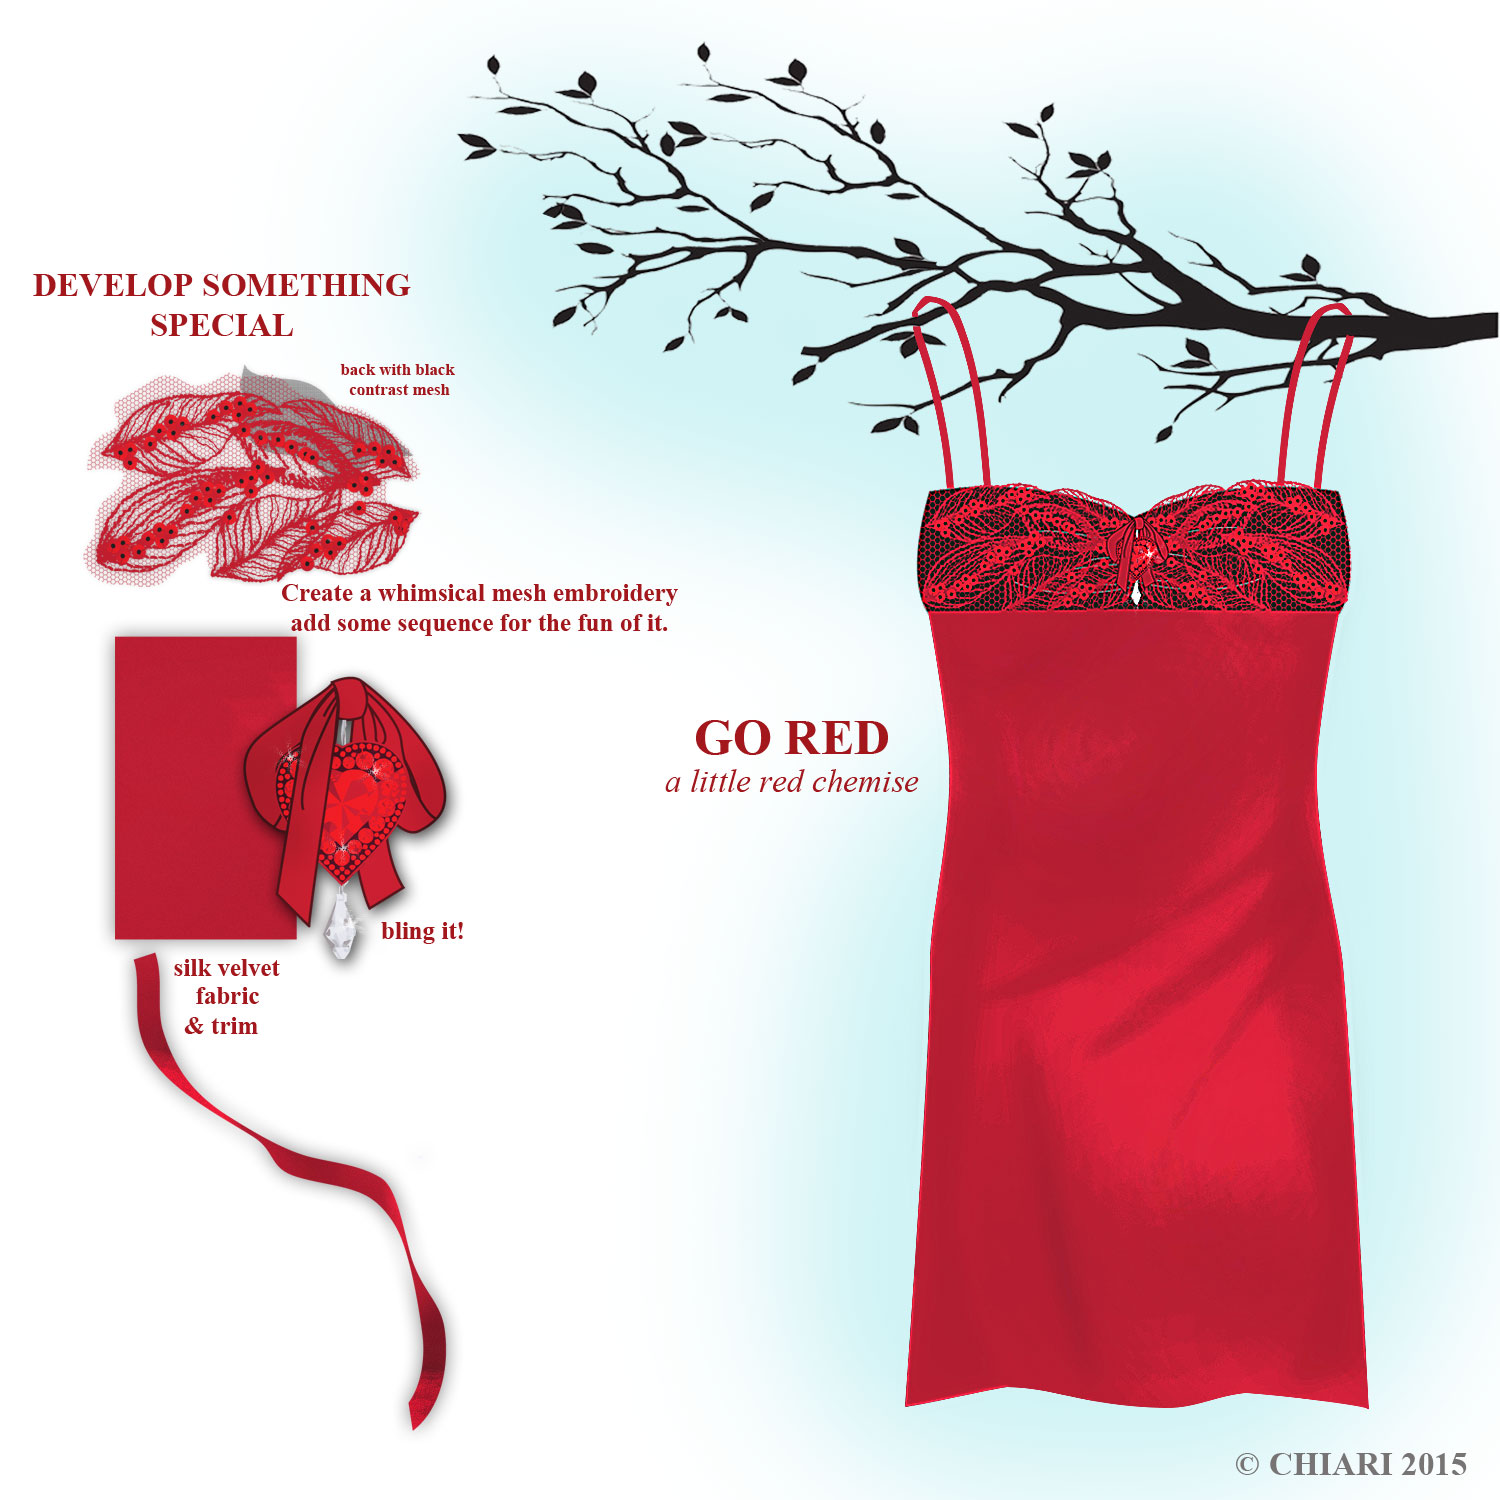 The Chemise goes red CHIARistyle 15